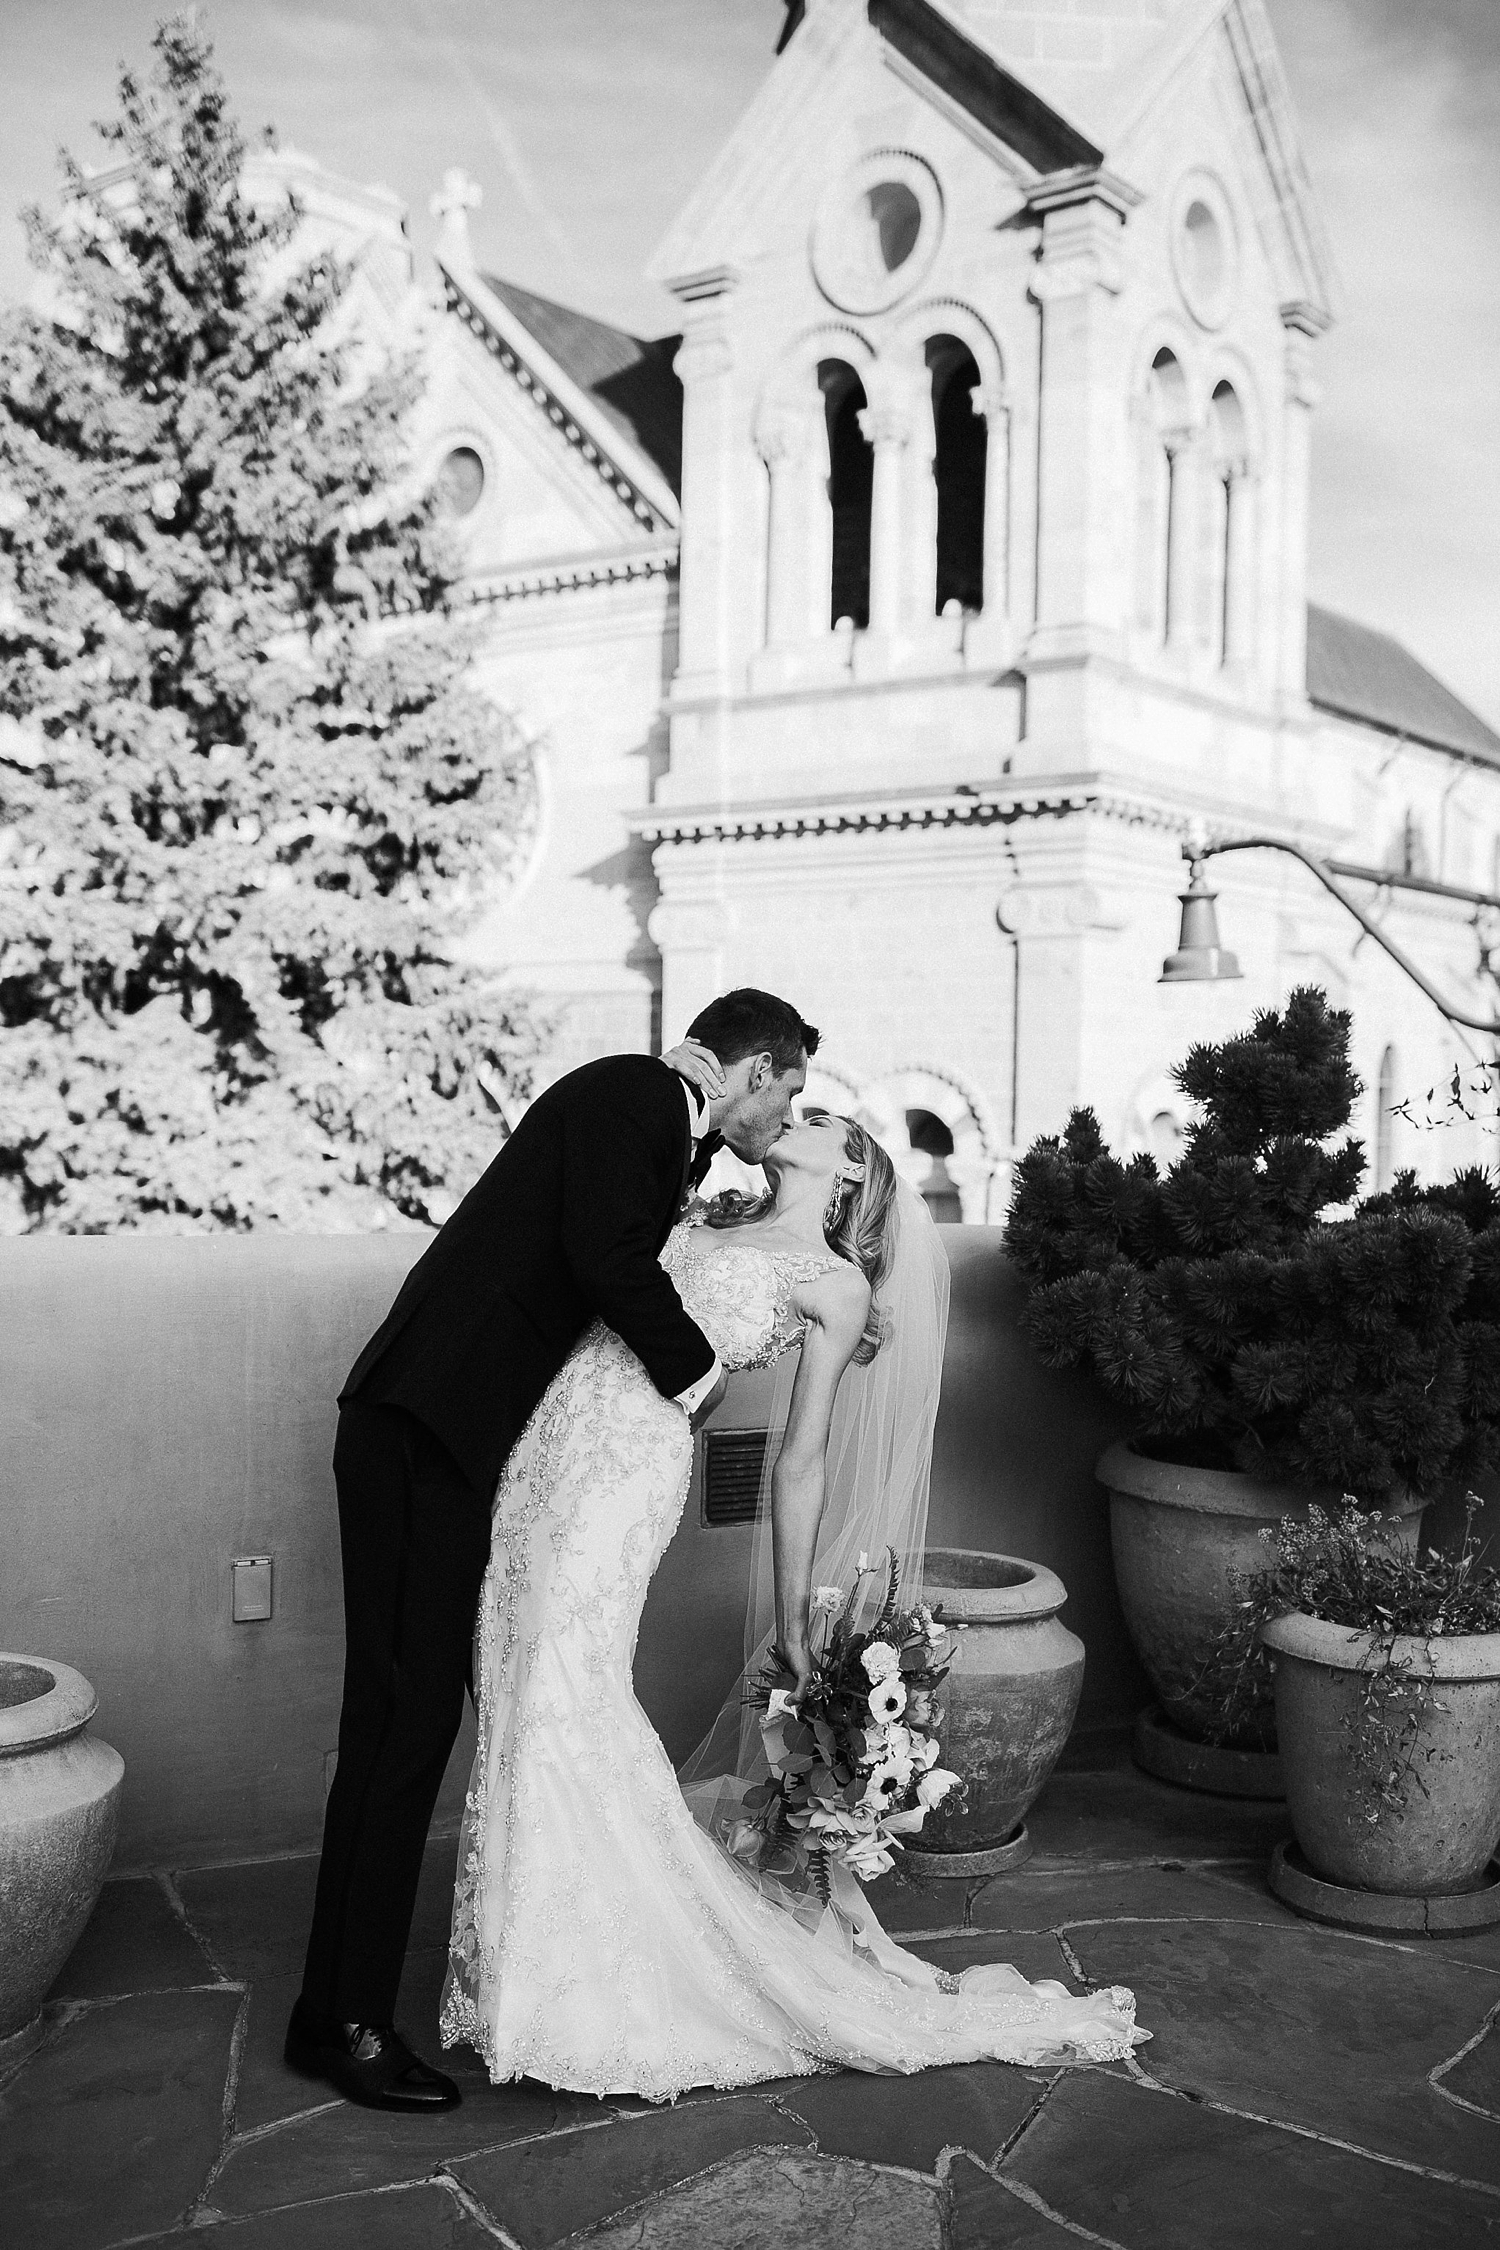 Alicia+lucia+photography+-+albuquerque+wedding+photographer+-+santa+fe+wedding+photography+-+new+mexico+wedding+photographer+-+la+fonda+wedding+-+la+fonda+winter+wedding_0063.jpg